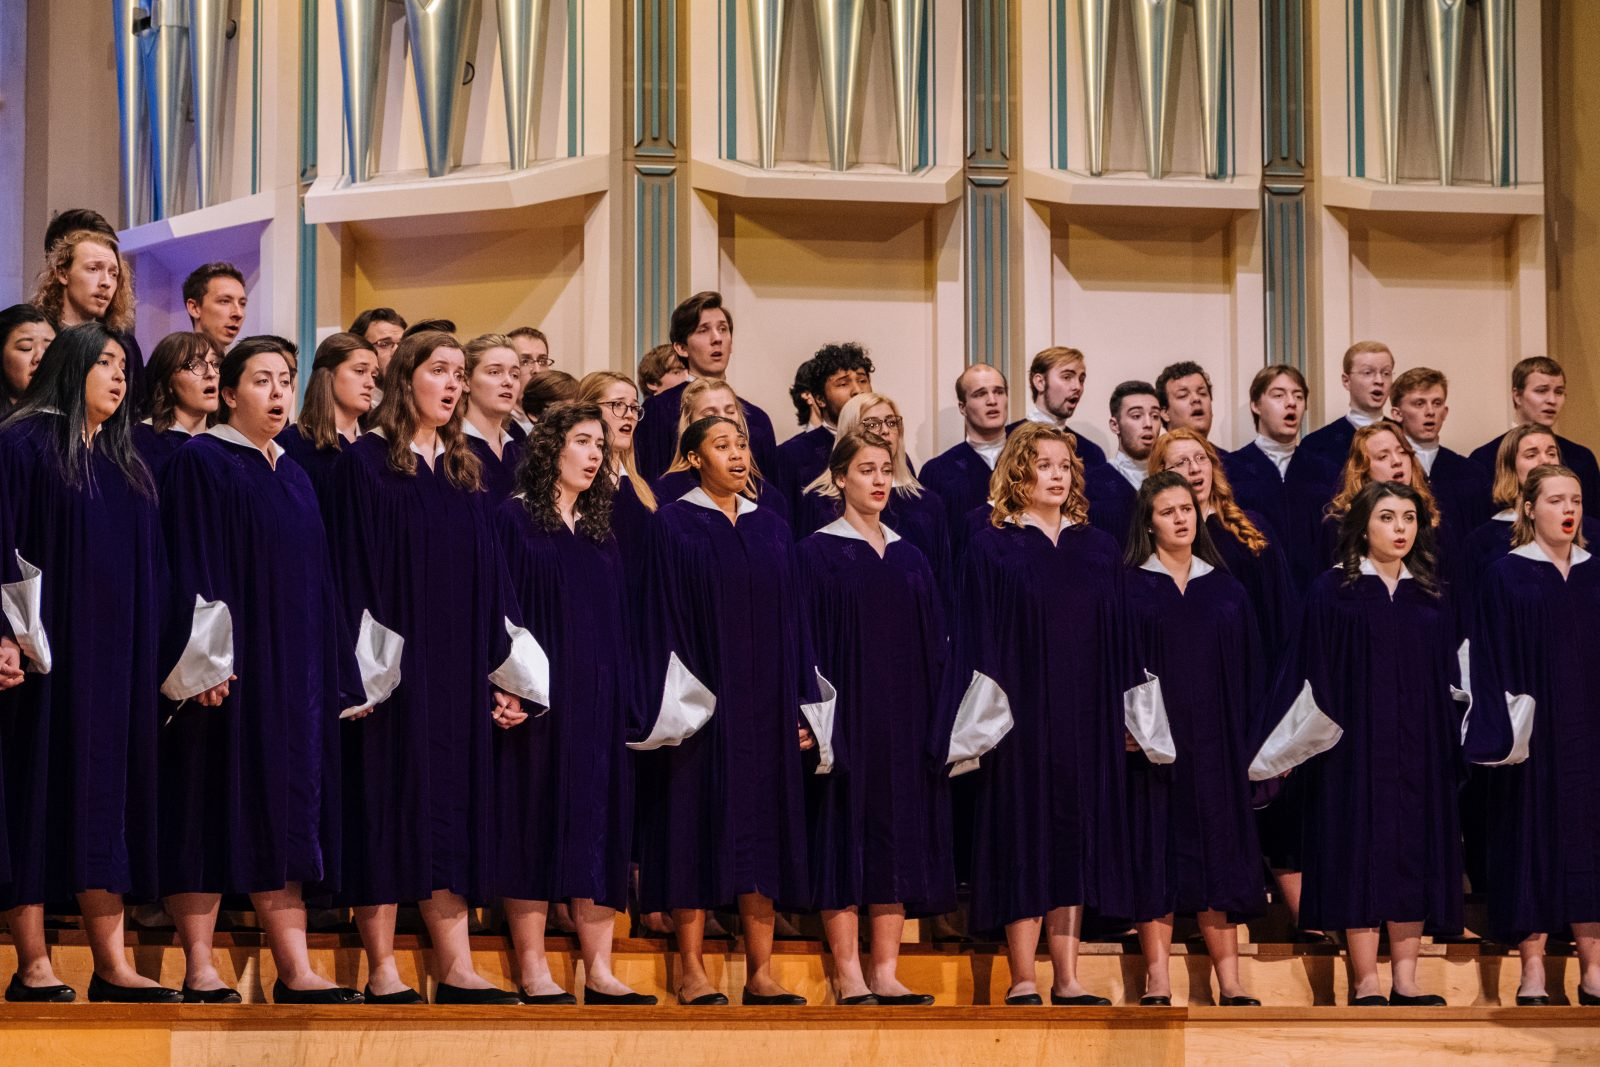 St Olaf College Christmas Concert 2020 Performance Calendar – St. Olaf Choir